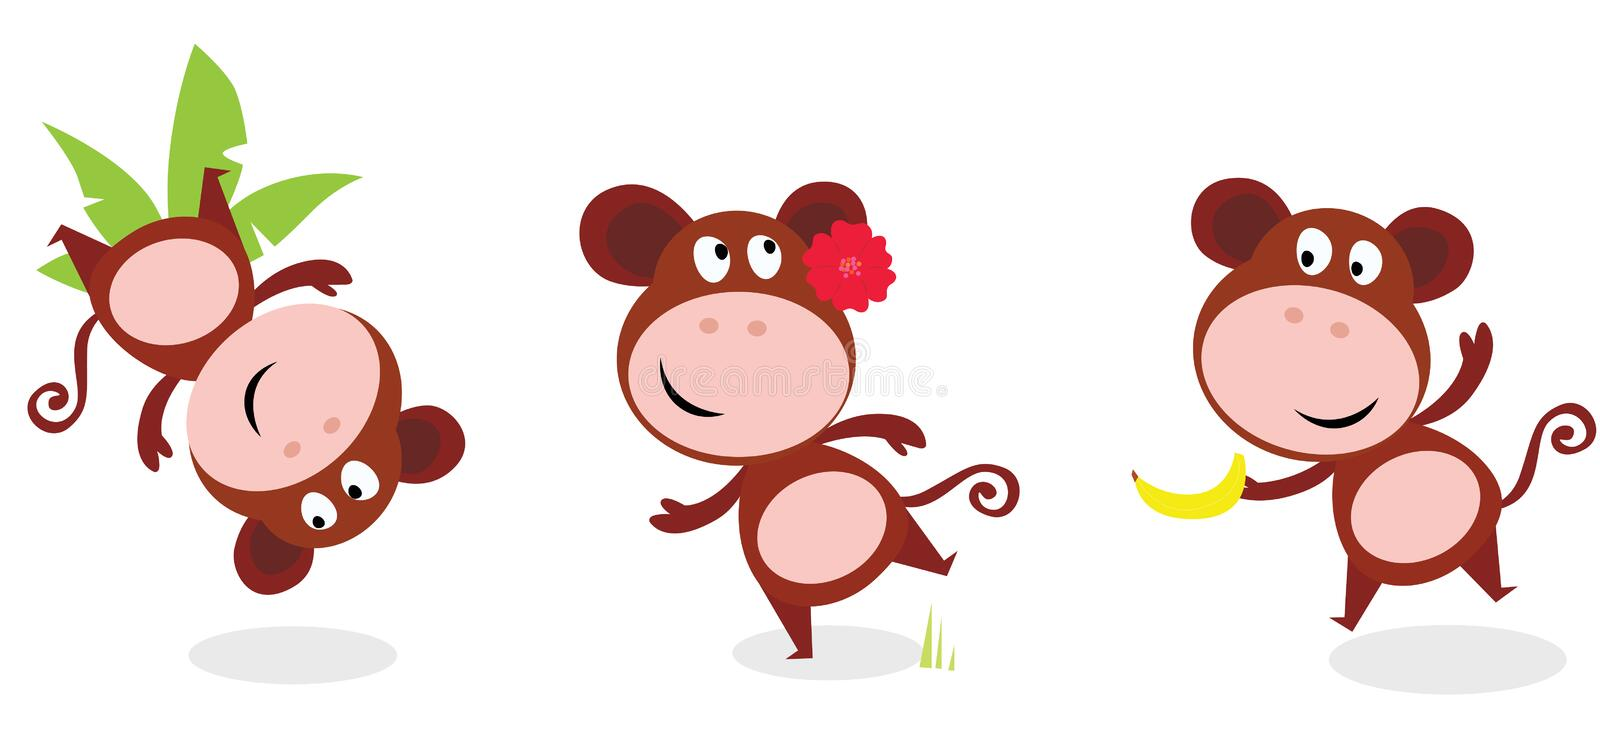 Brown cute monkey poses isolated on white royalty free illustration